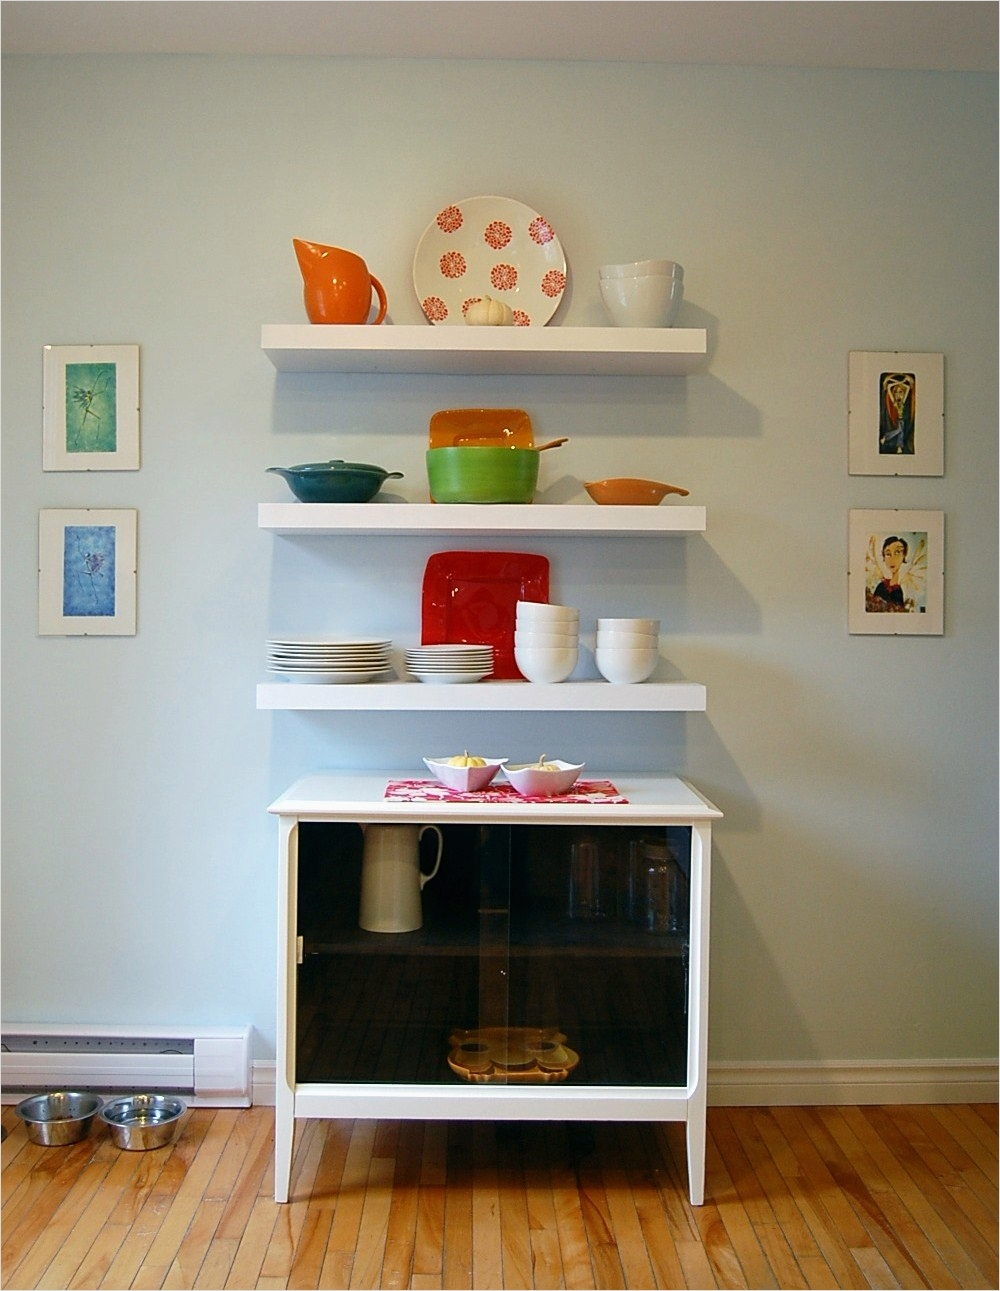 42 Stylish Ideas Minimalist Kitchen Shelves 45 Floating Kitchen Shelves How Can they Benefit Us Amaza Design 1